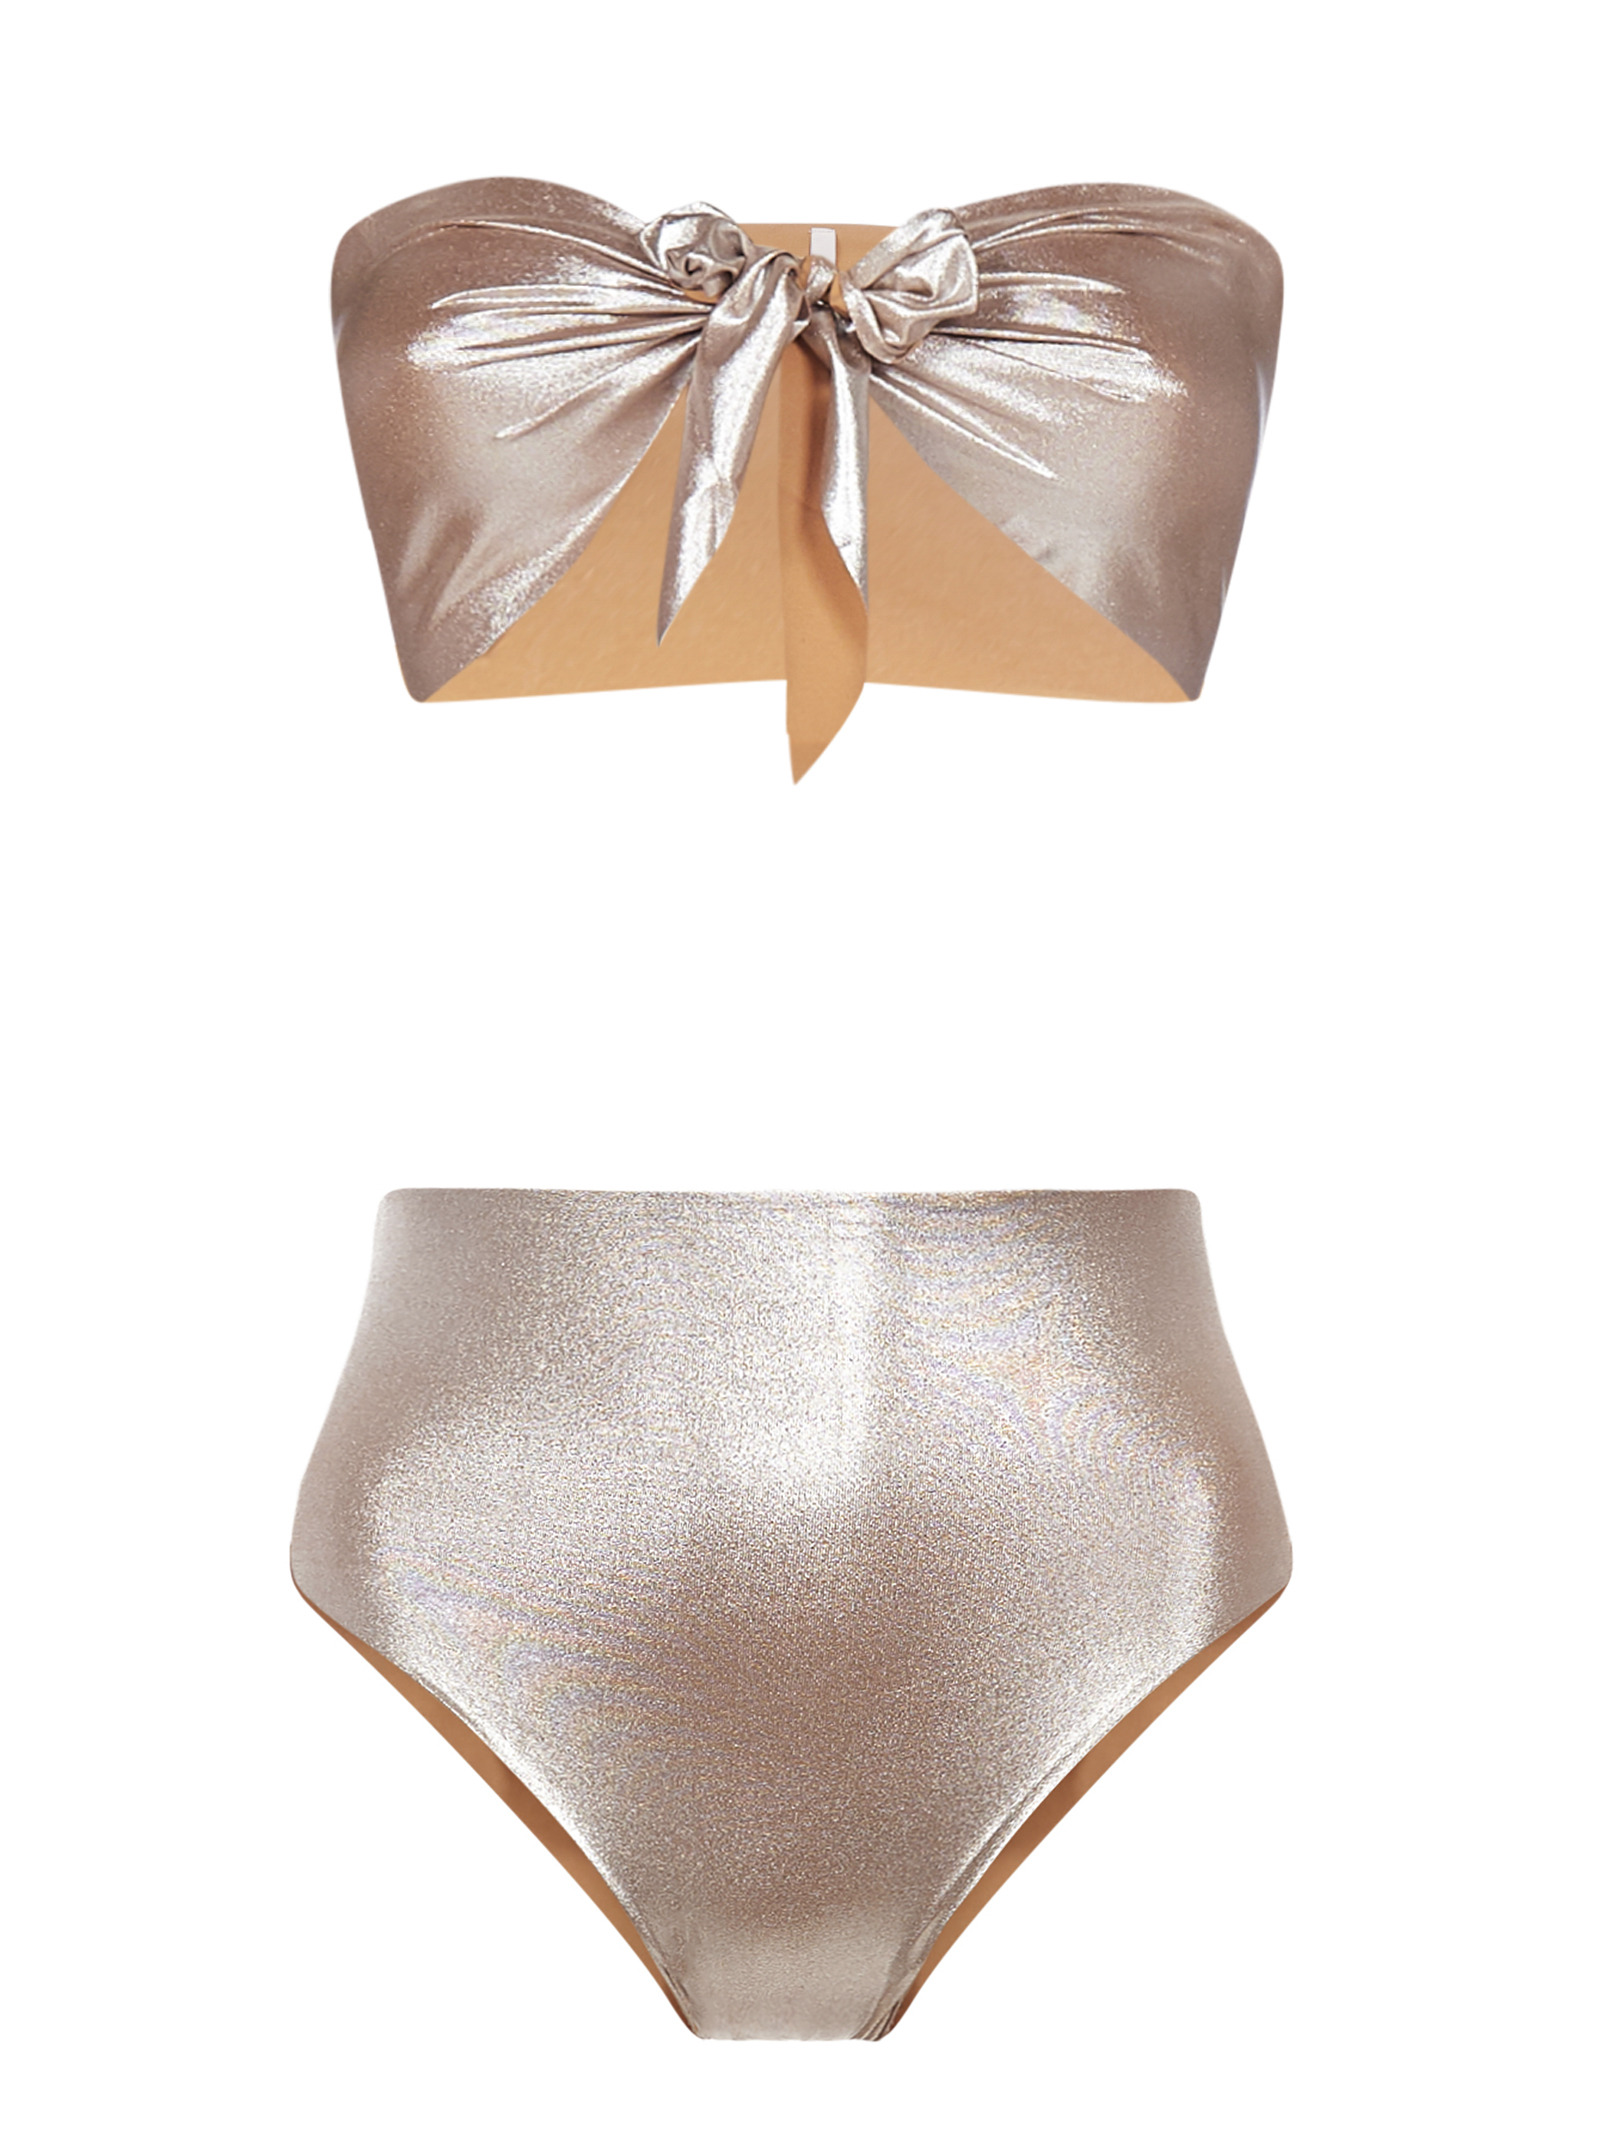 Knotting Bay Bandeau High Waisted in Platinum